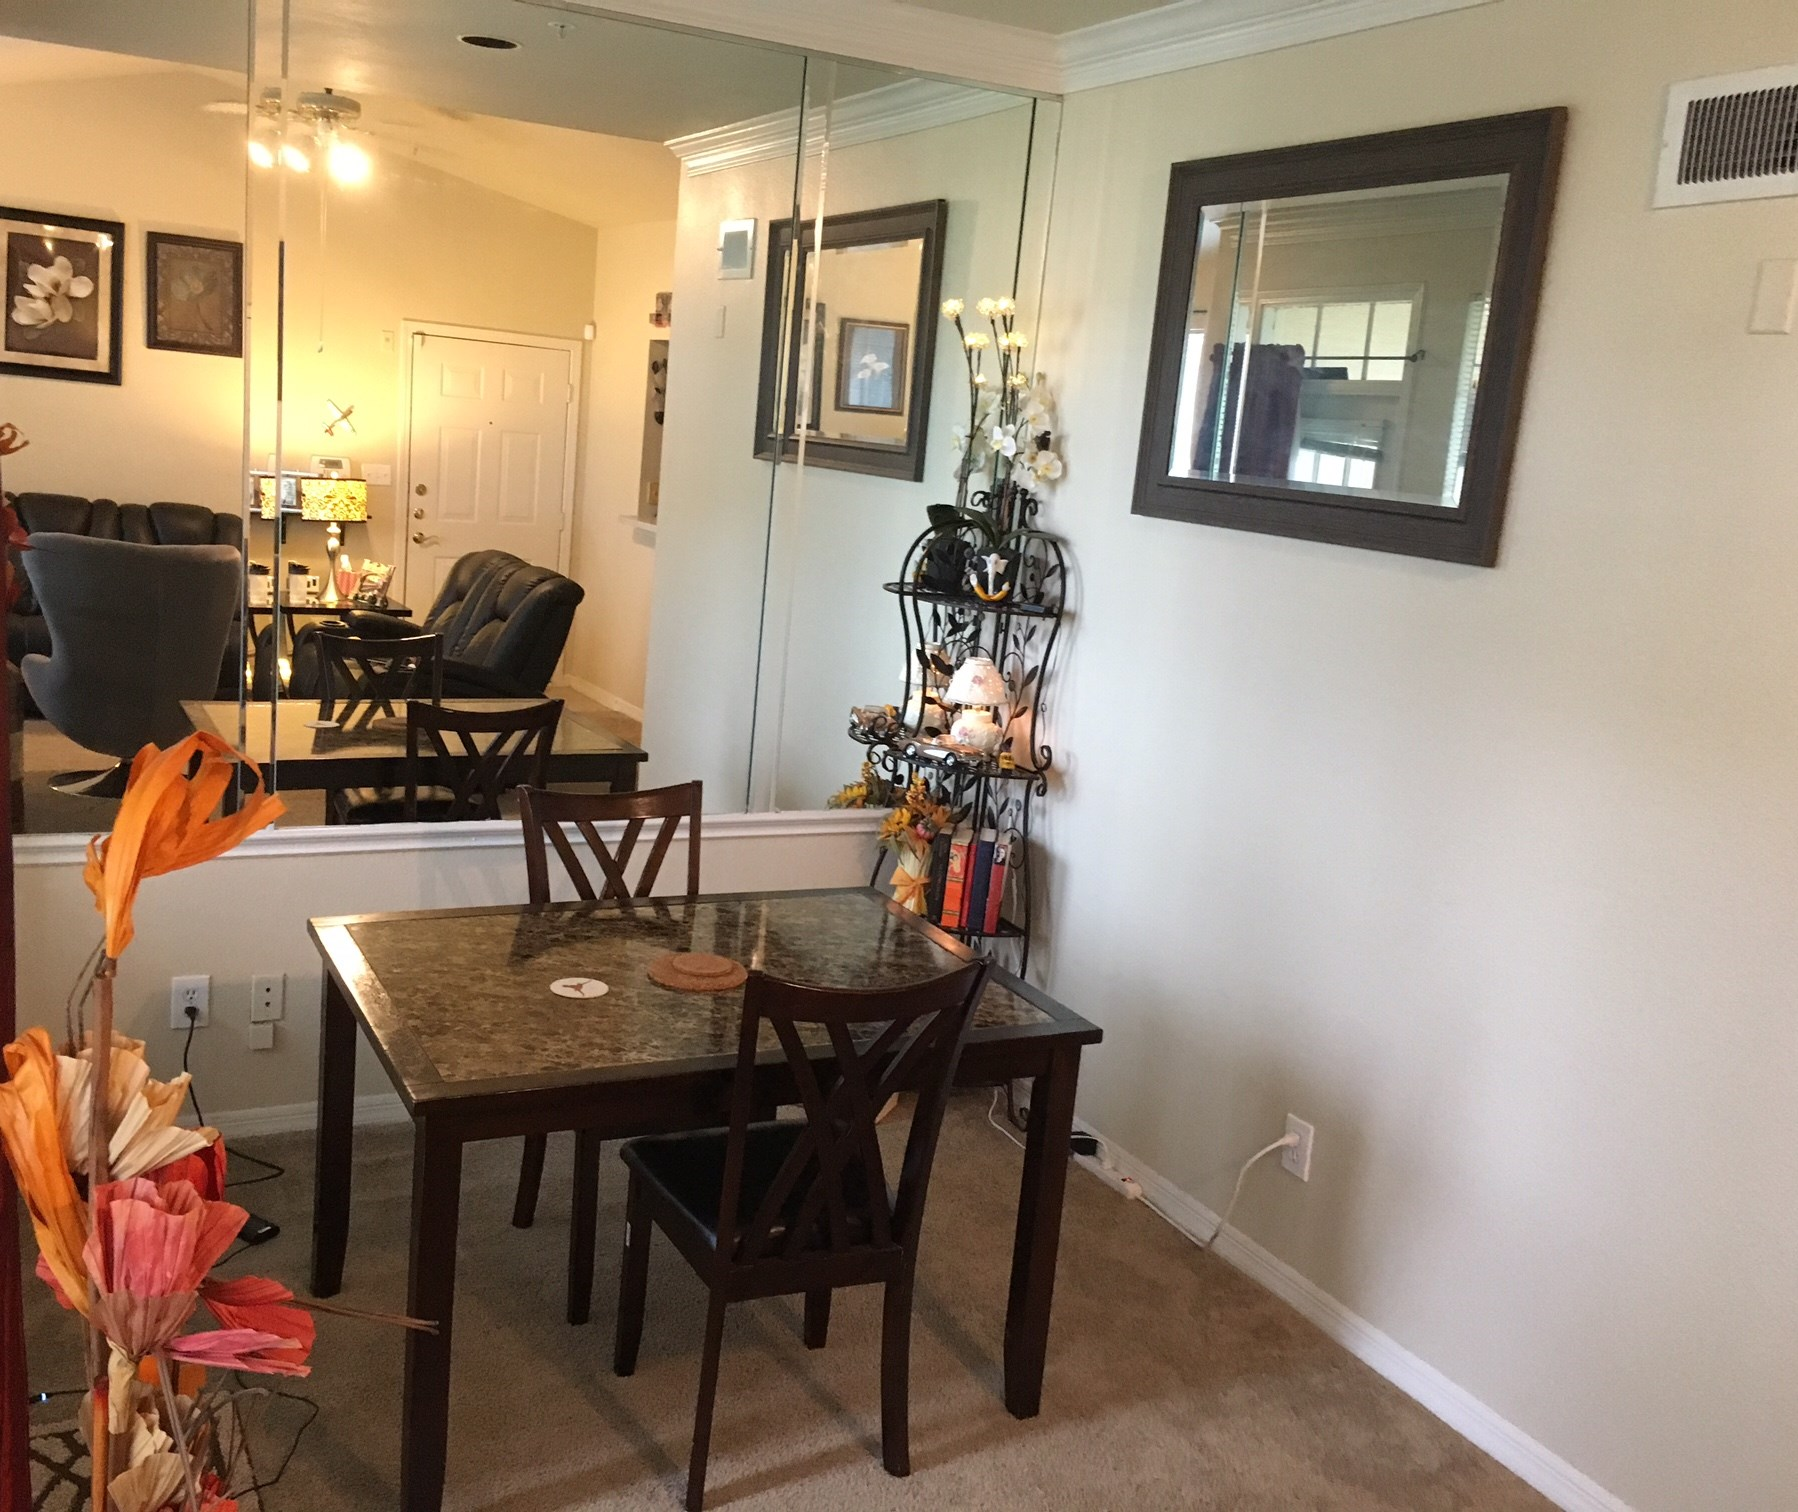 Rooms for Rent in Dallas Fortworth Apartments Flats Commercial